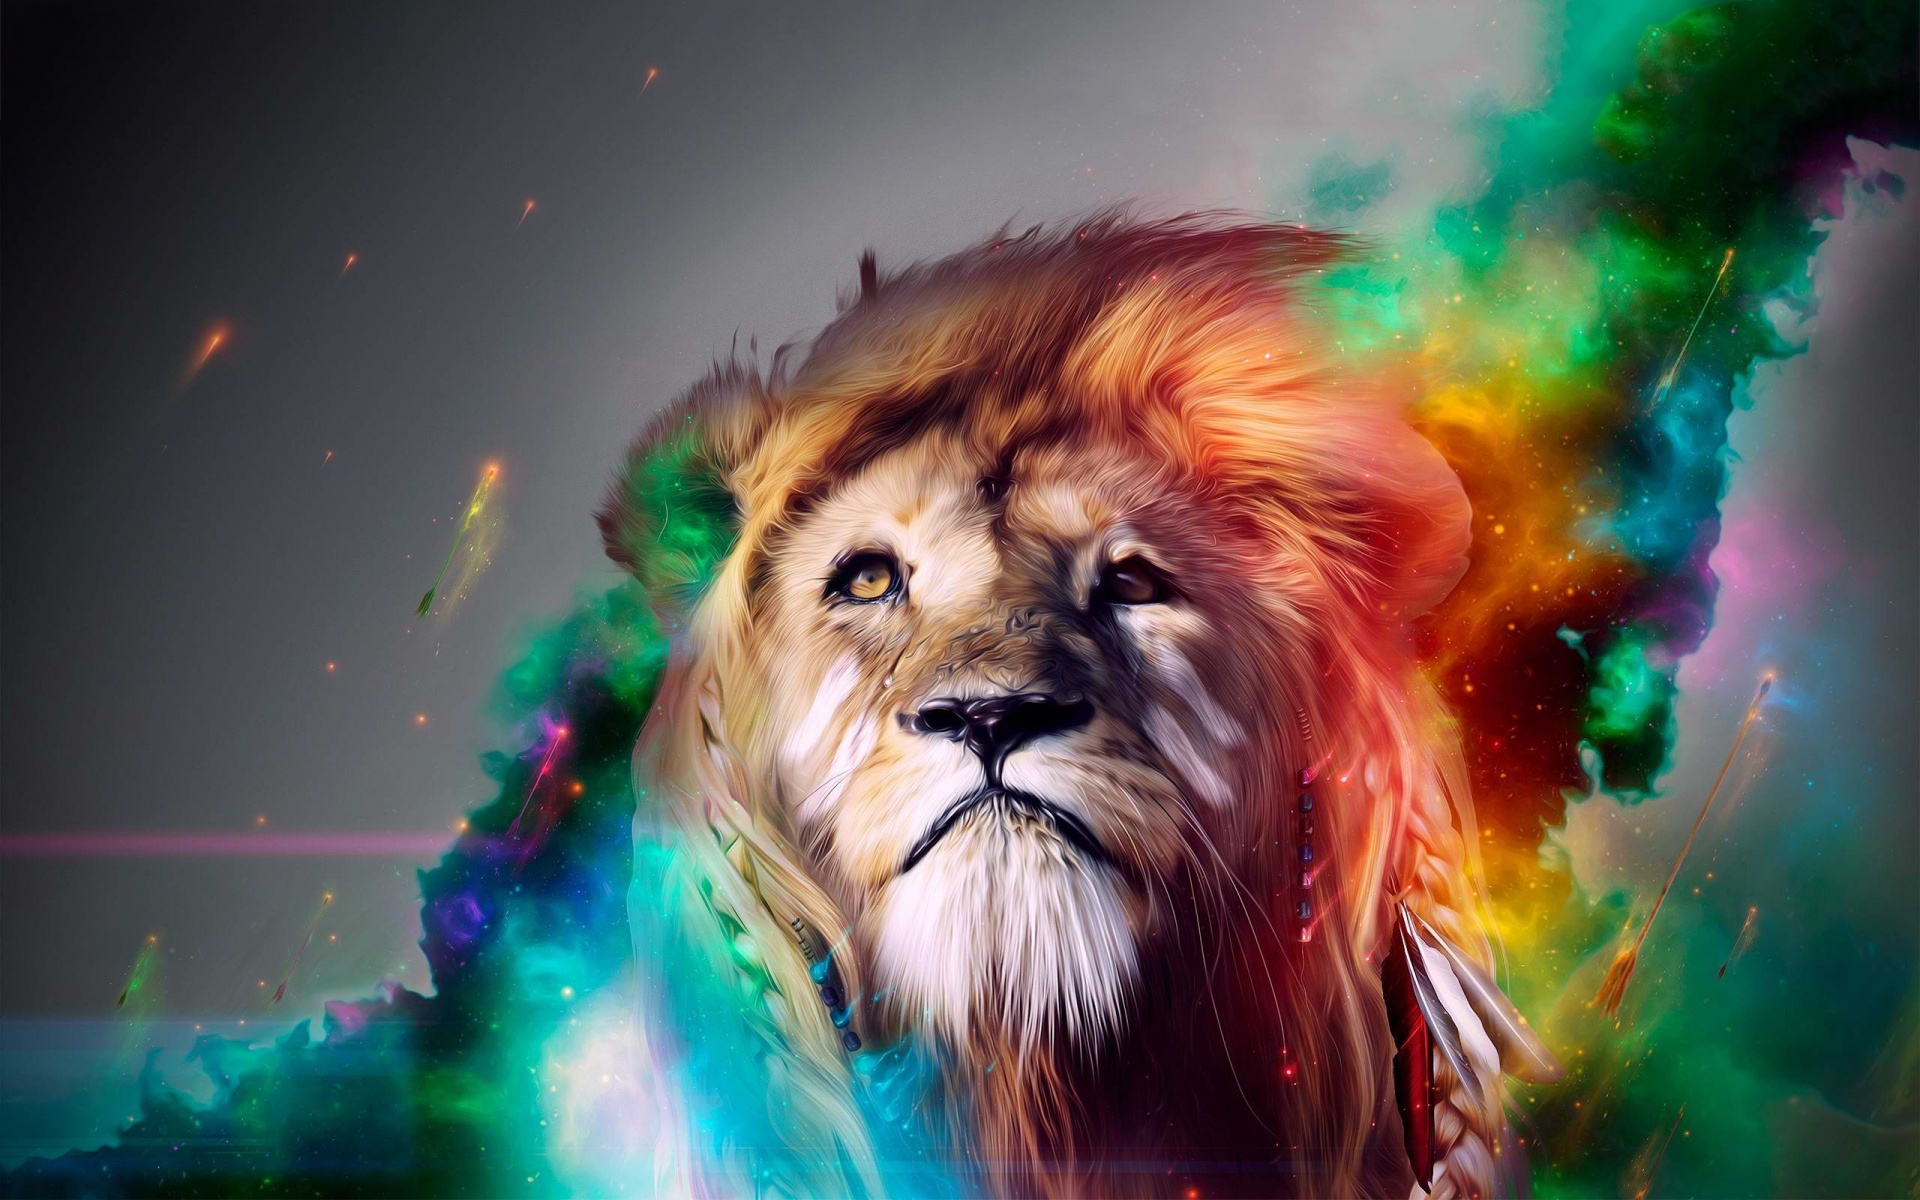 Lion cg digital art fantasy psychedelic face eyes color manip 1920x1200